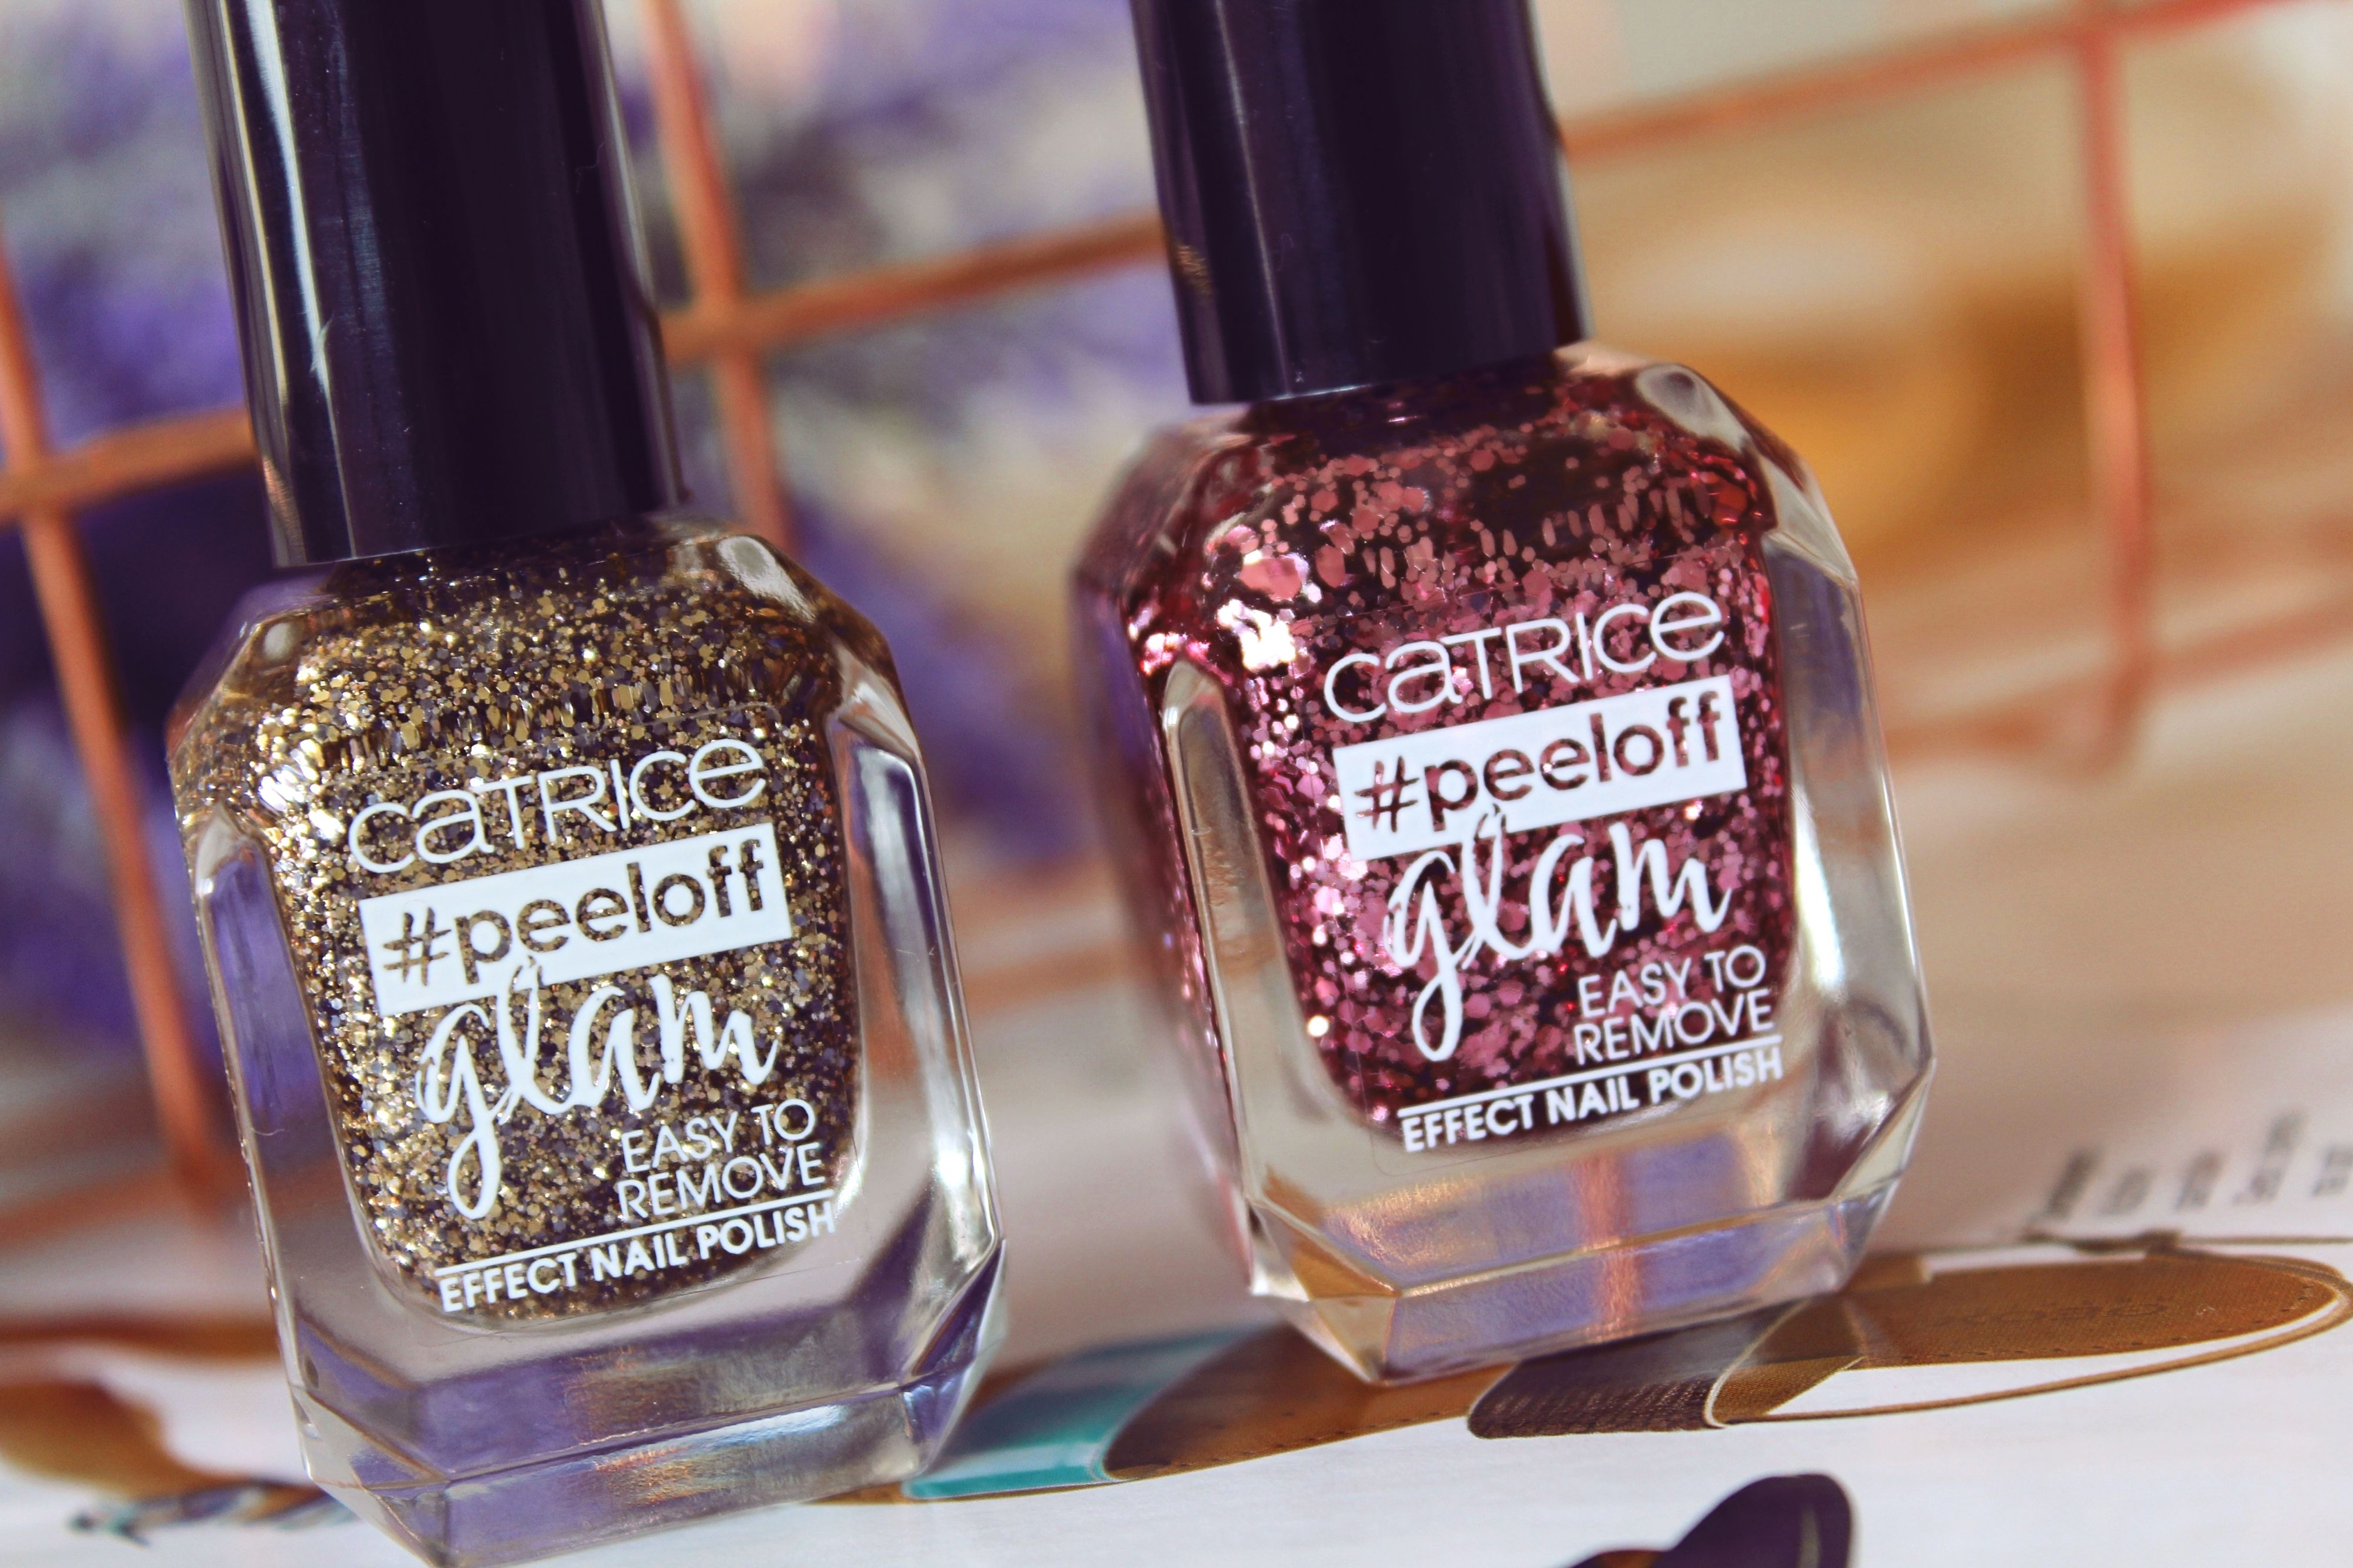 Catrice Peeloff Glam Easy To Remove Effect Nail Polish Review Recenzija Simple Serenity